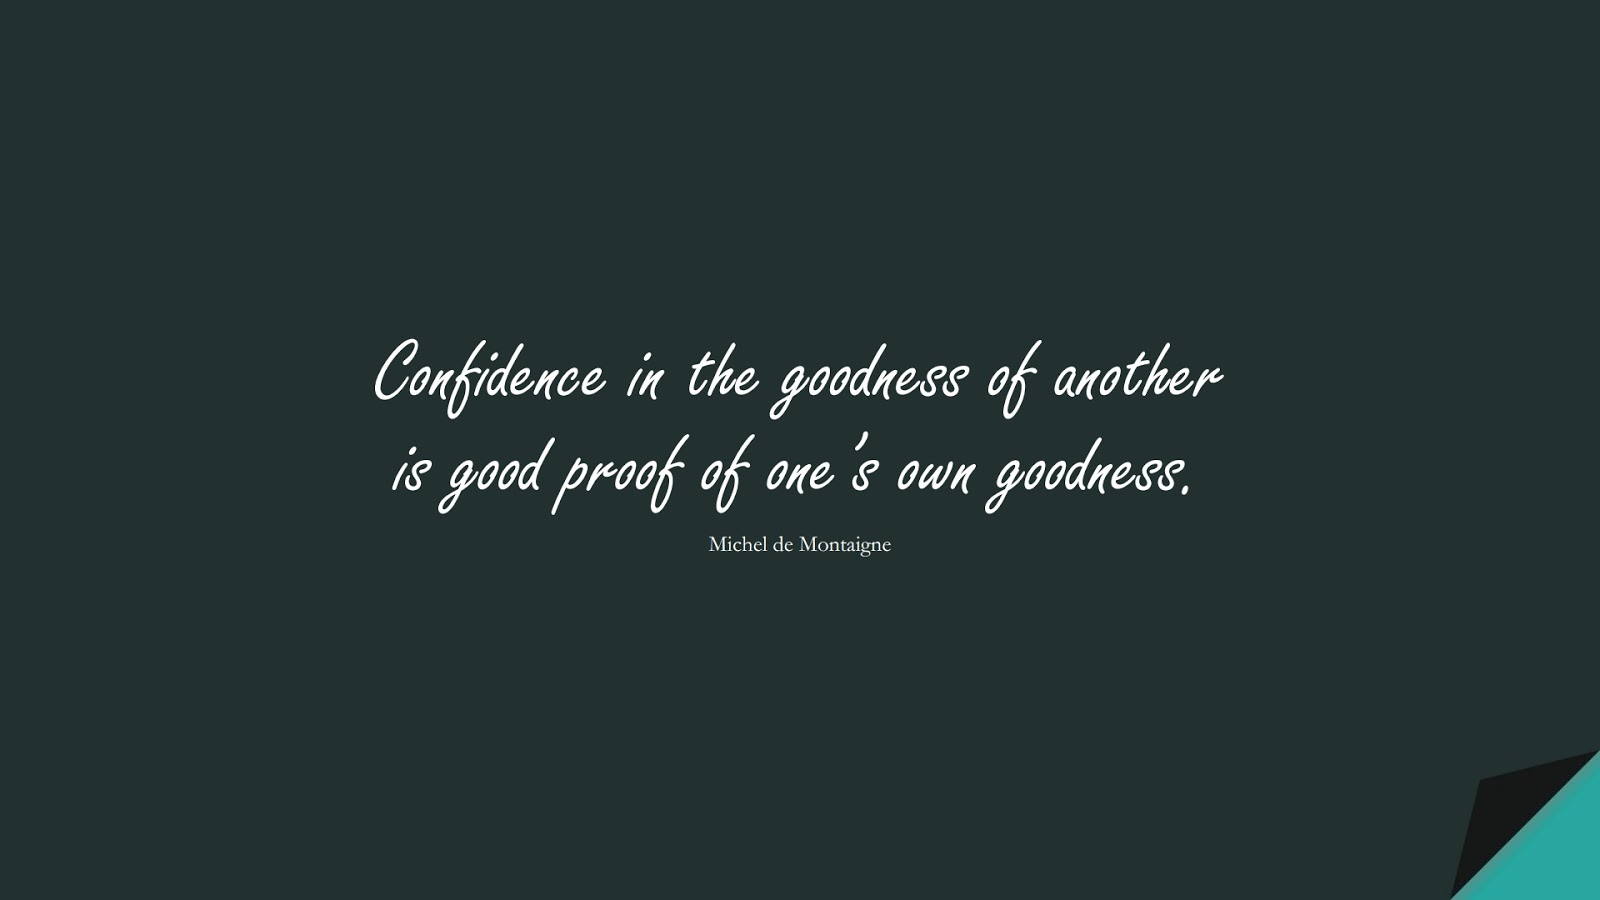 Confidence in the goodness of another is good proof of one's own goodness. (Michel de Montaigne);  #ShortQuotes